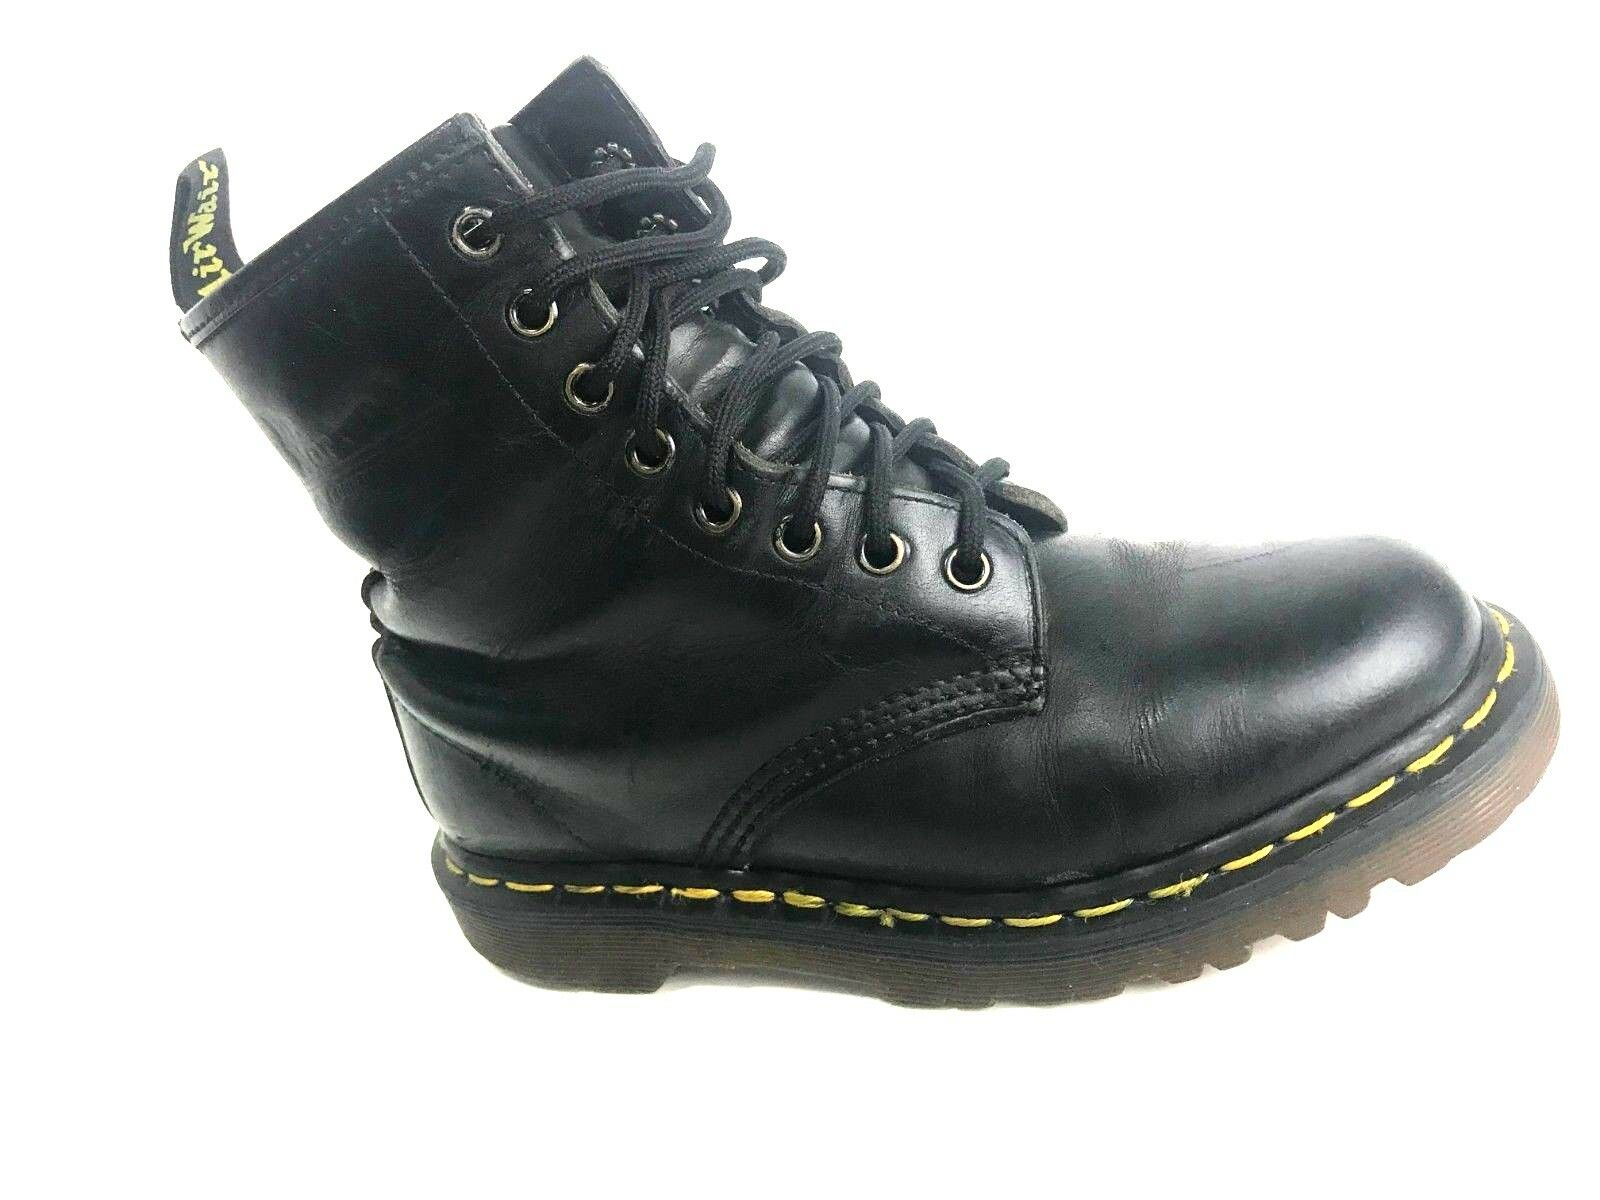 Dr Martens Vintage Made In England Women's Black Boots Size US.7 EU.37.5 UK.5